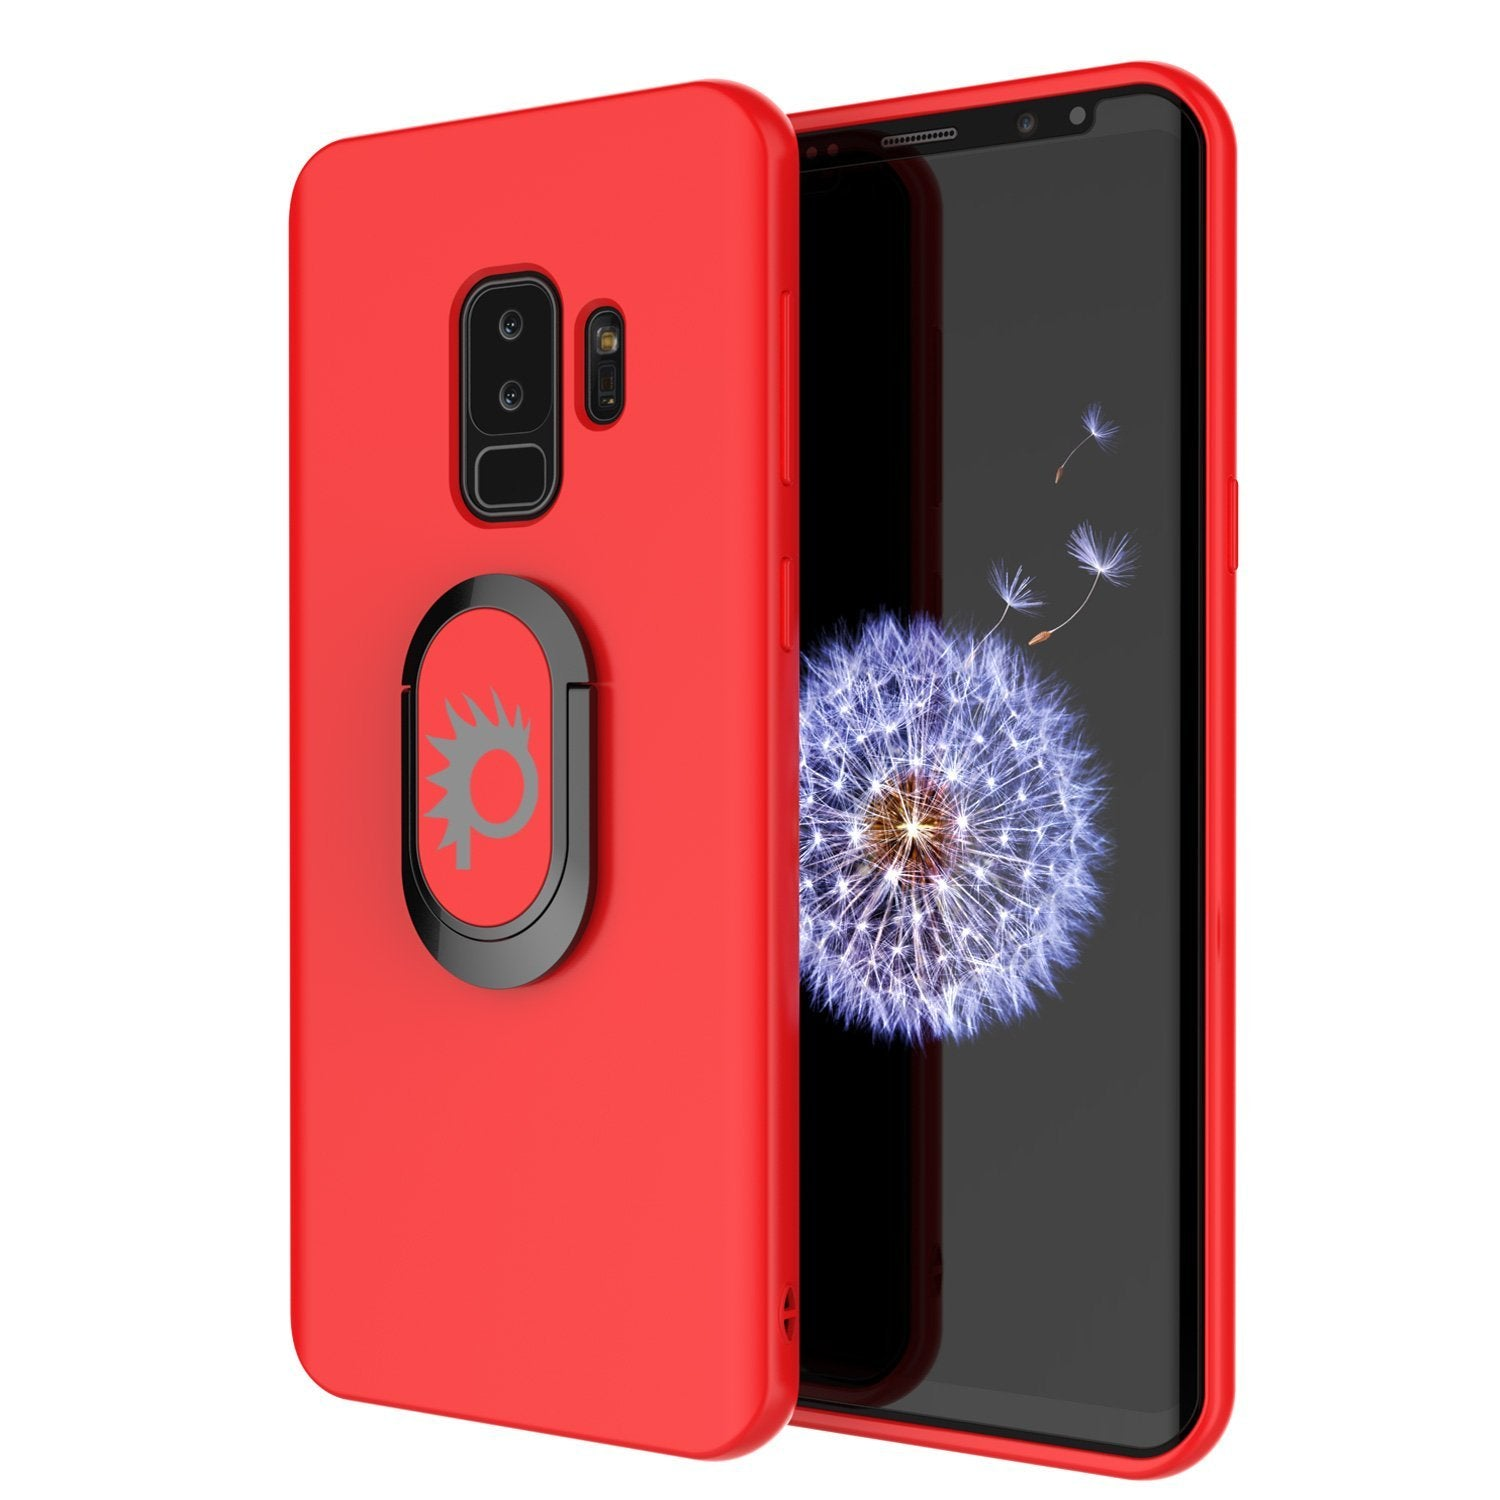 Galaxy S9 Plus, Punkcase Magnetix Protective TPU Cover W/ Kickstand, Sceen Protector[Red]